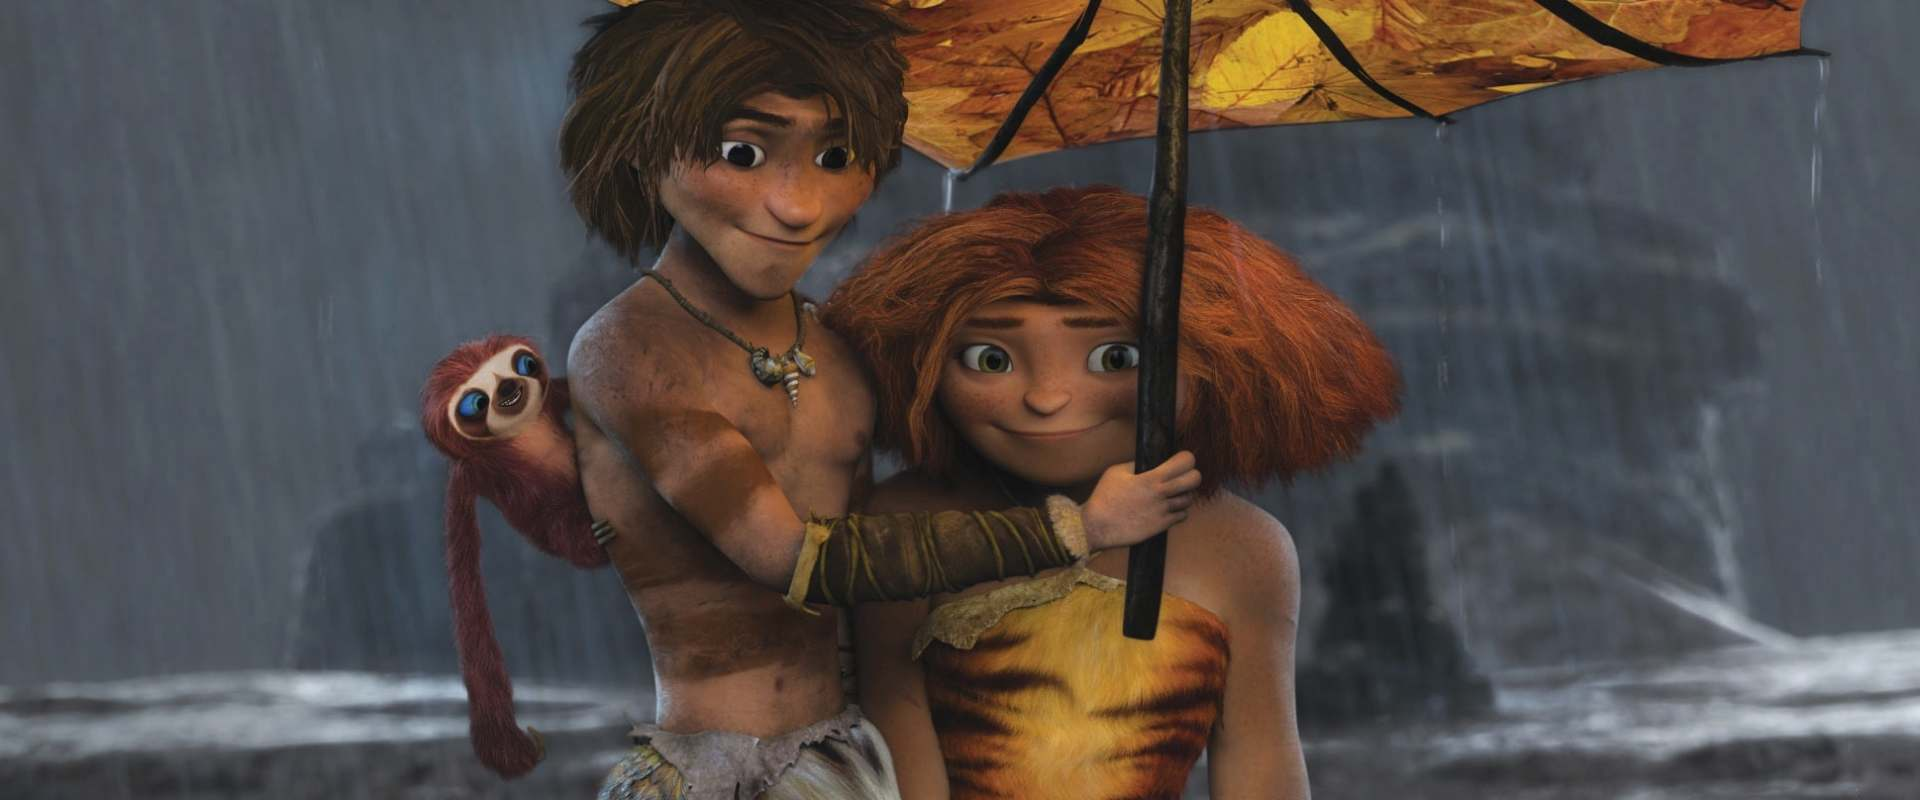 The Croods background 1